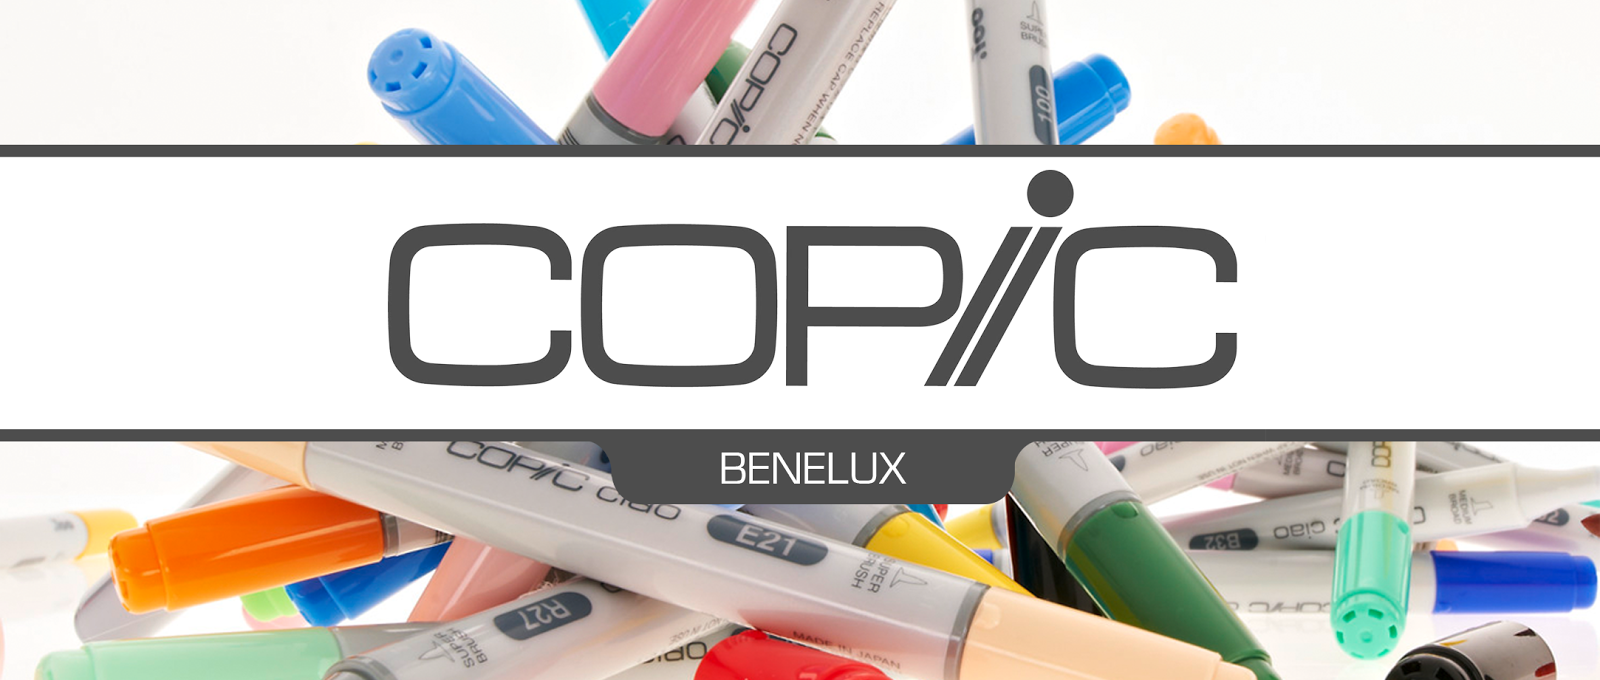 Copic Marker Benelux